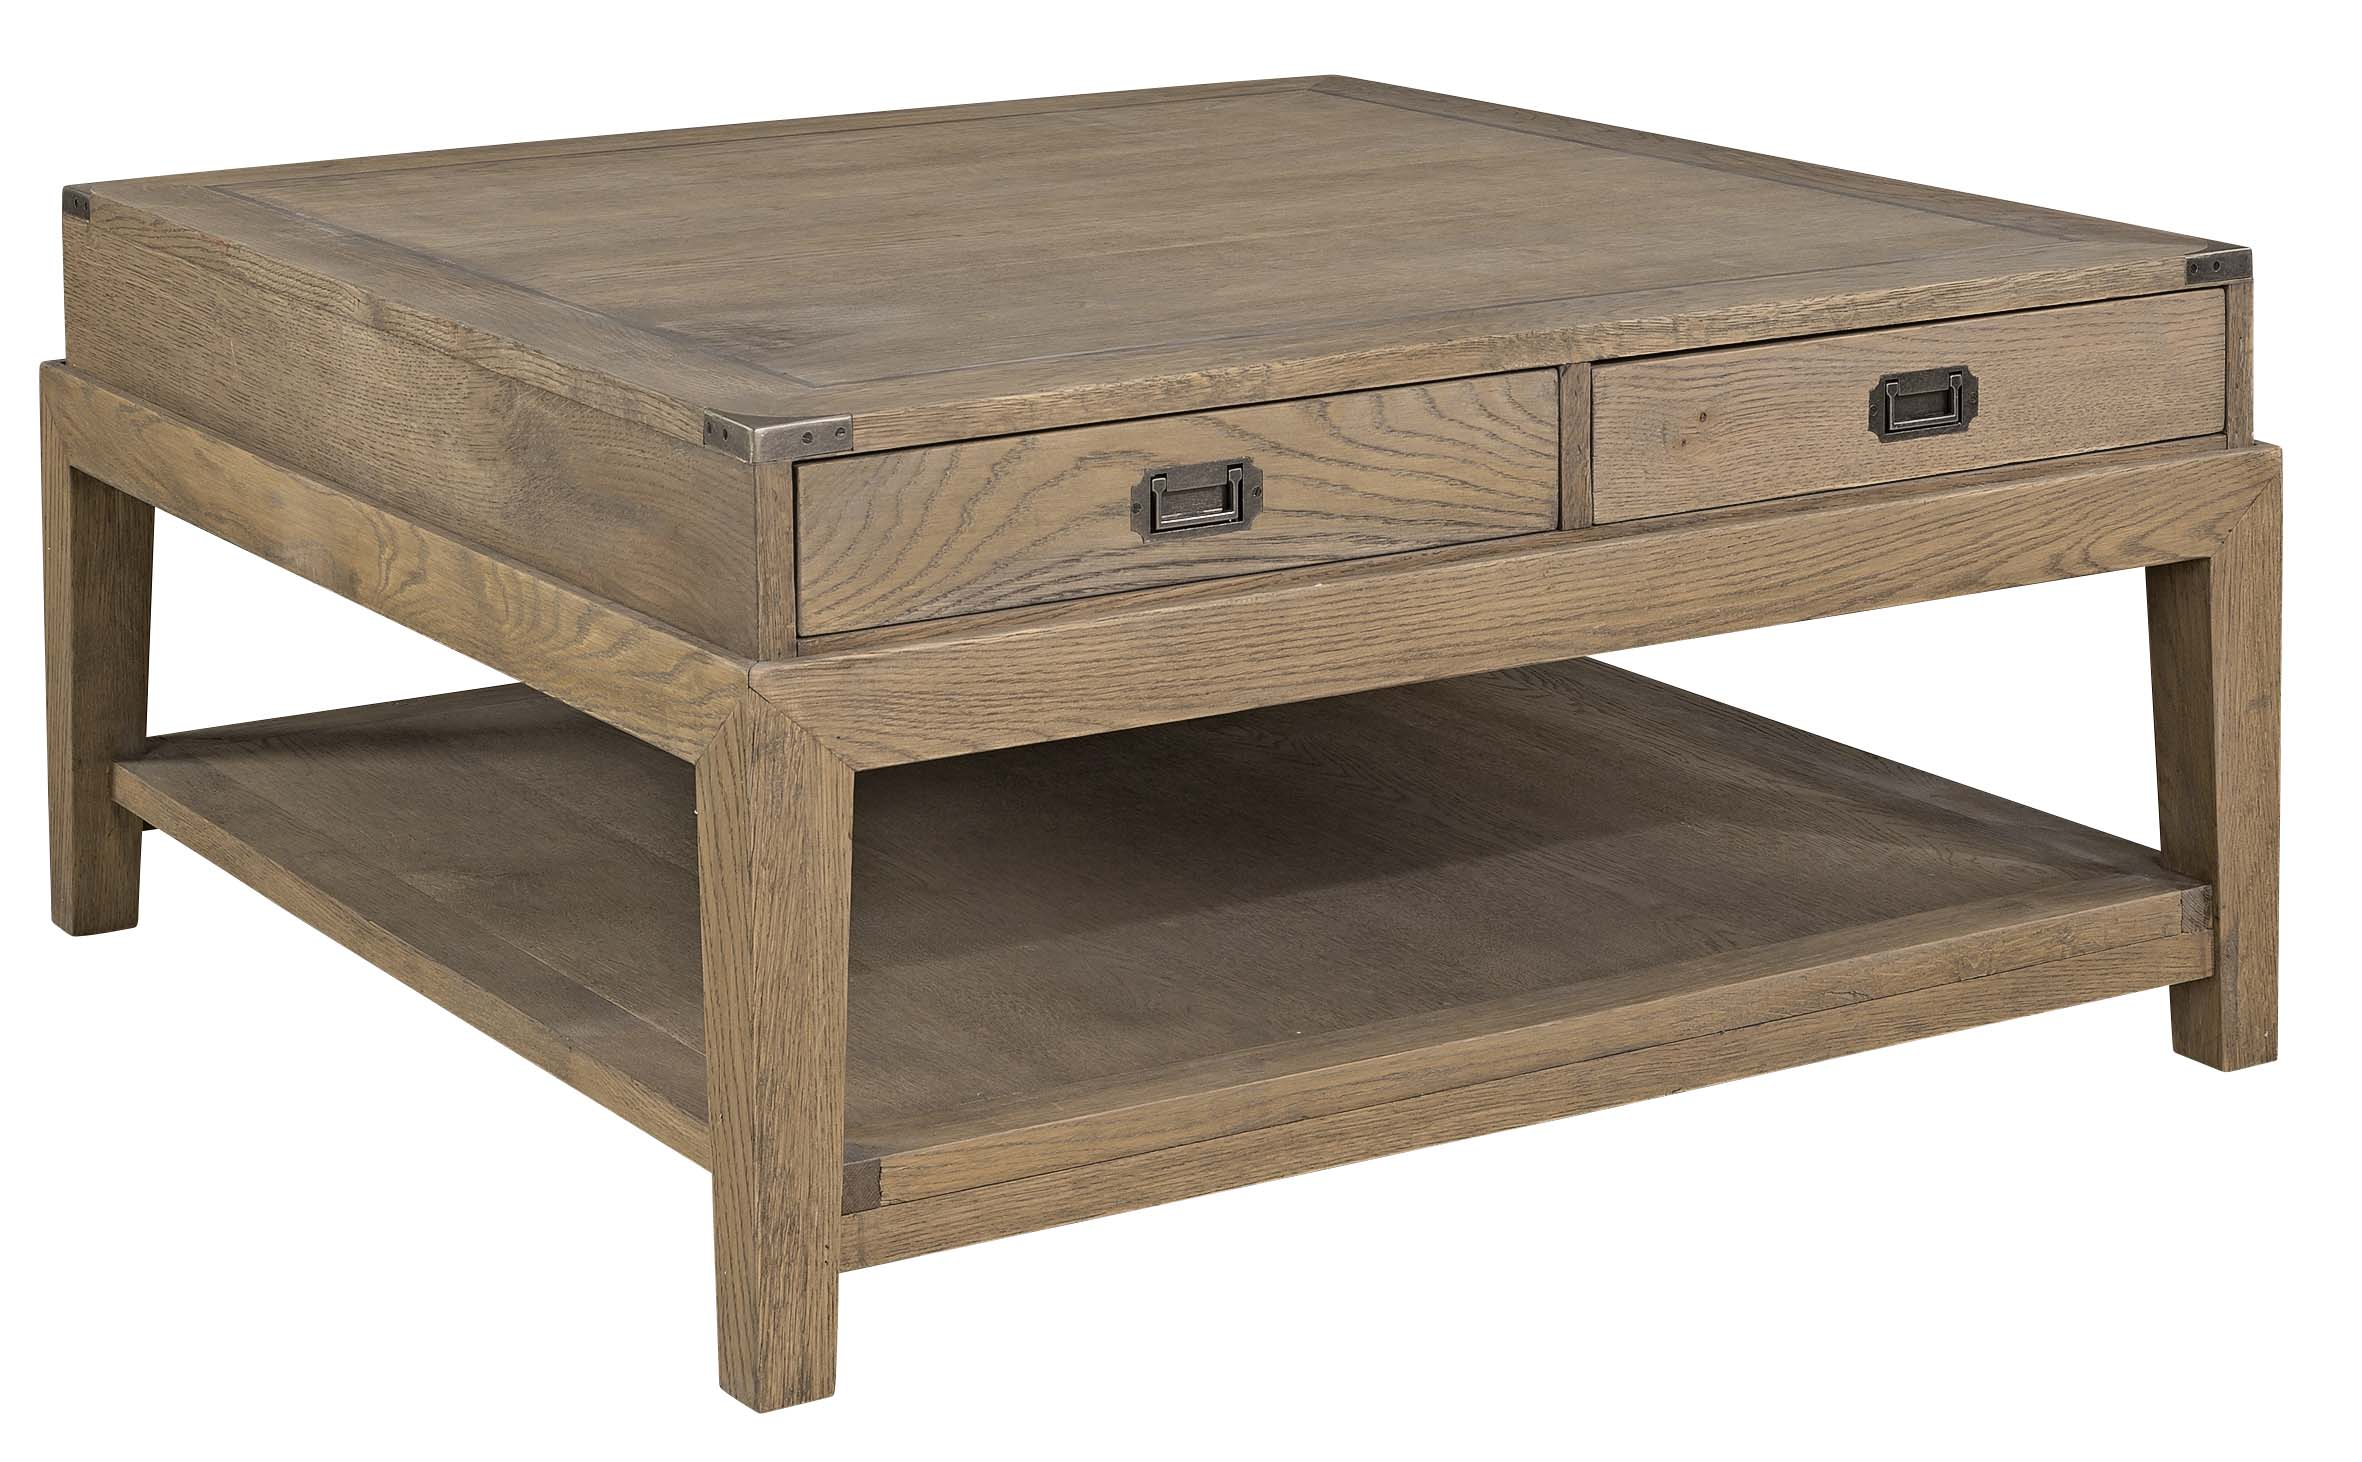 Vermont Coffee Table Square Artwood : 06 60318 from artwoodfurniture.nz size 2362 x 1462 jpeg 287kB